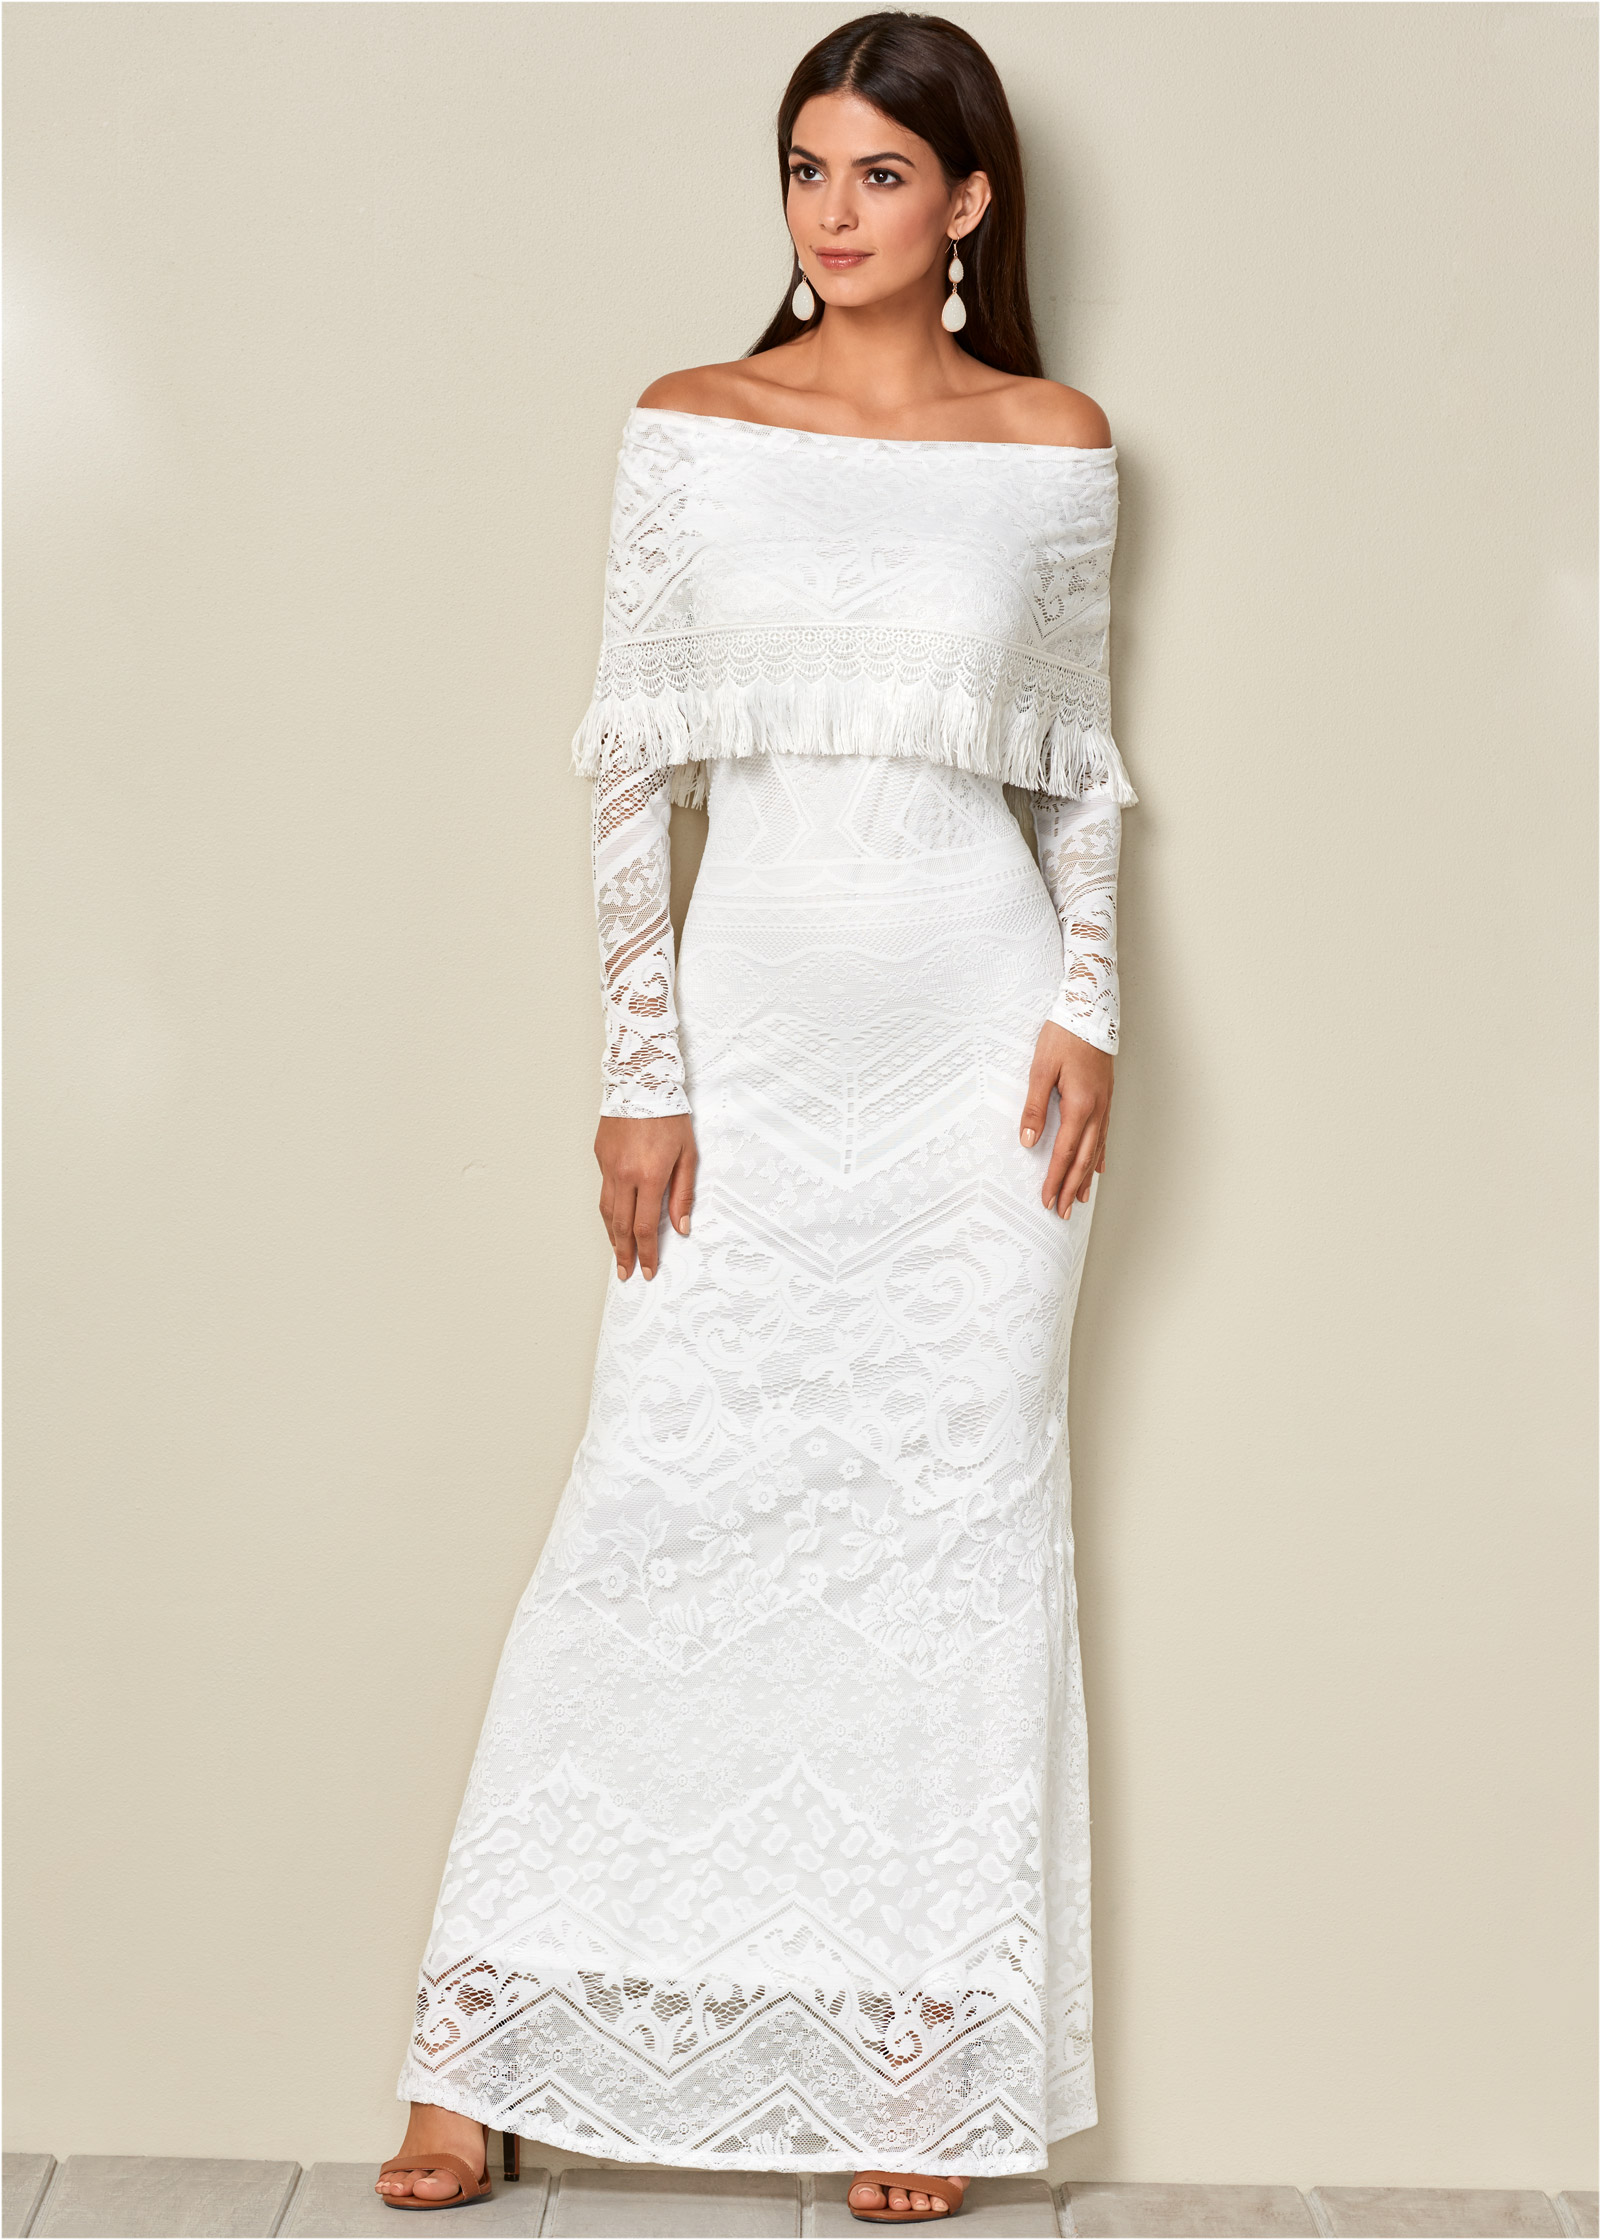 LACE MAXI DRESS in White | VENUS